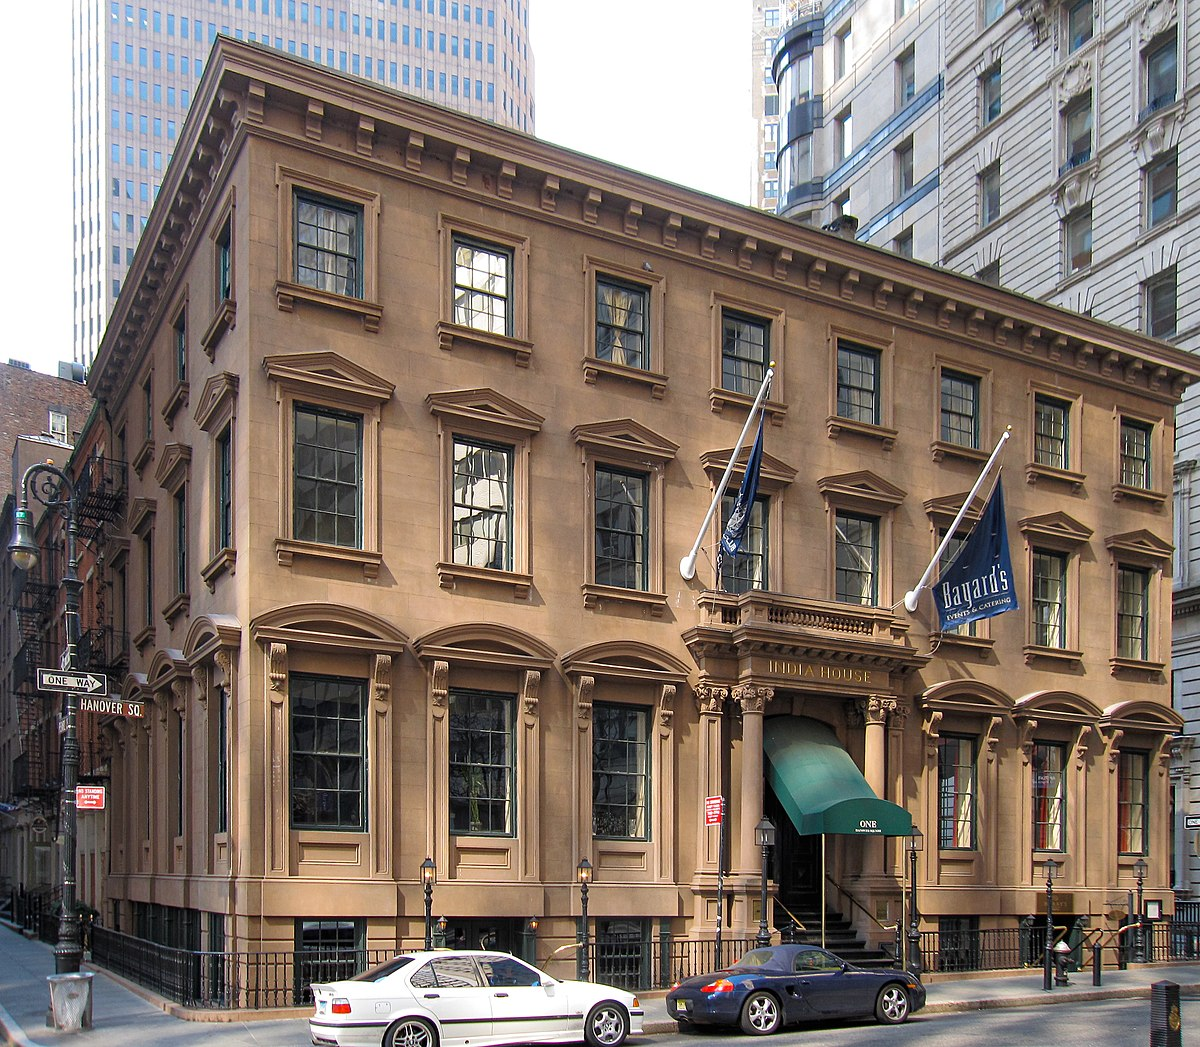 1 hanover square wikipedia for The hanover house